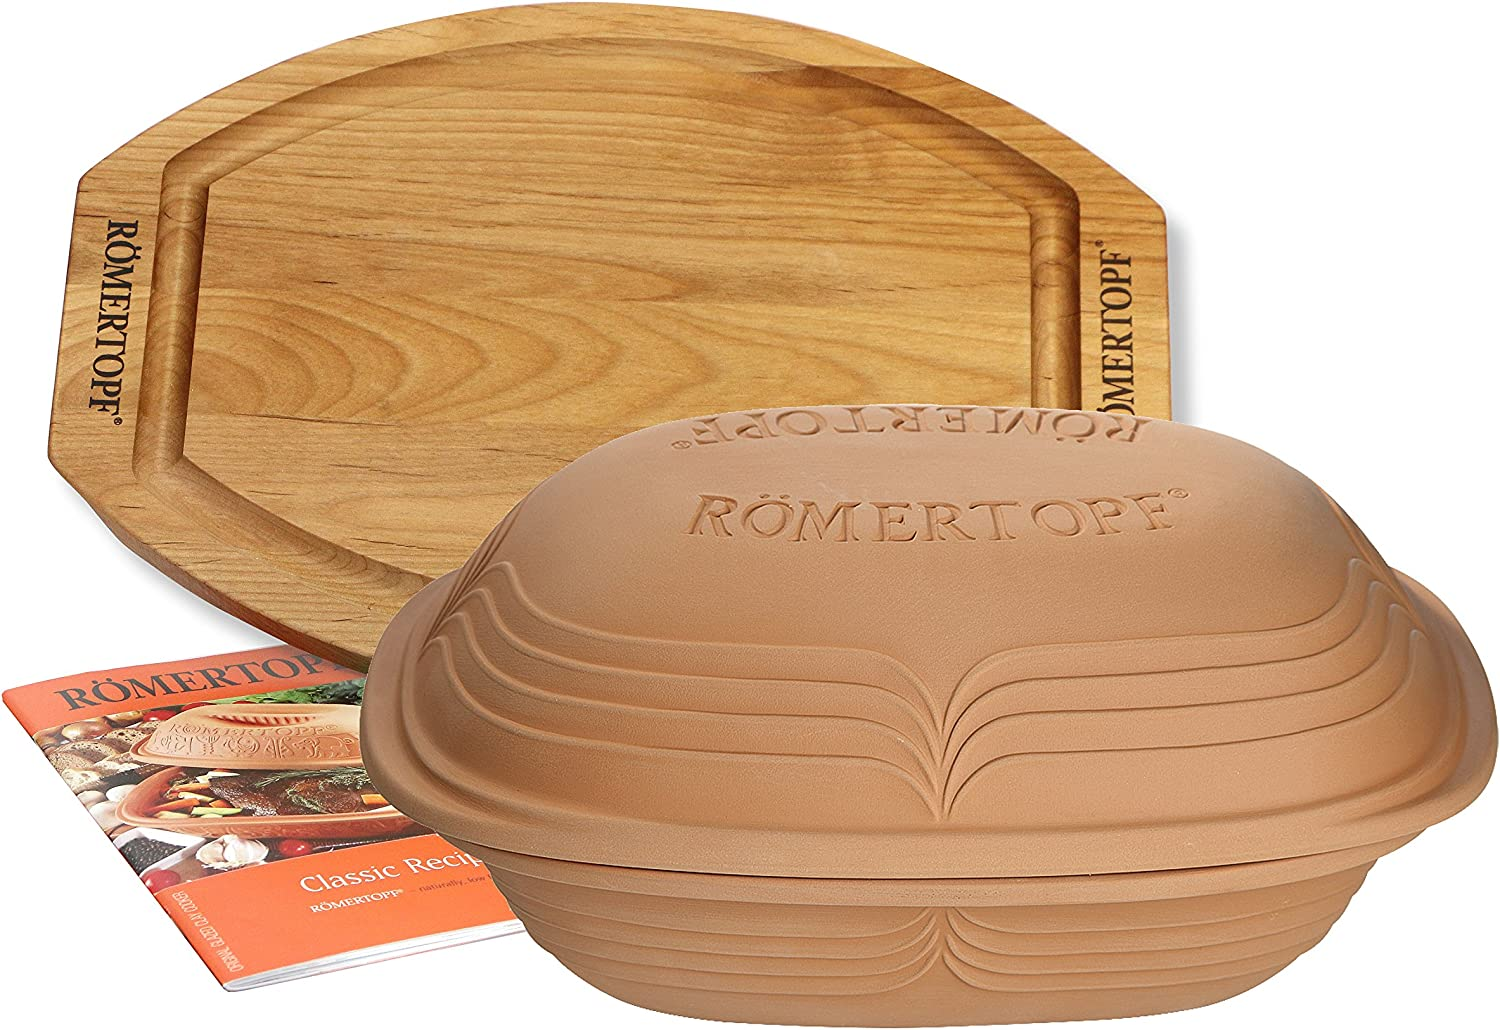 Romertopf by Reston Lloyd 4.1-Quart Modern Clay Cooker Set with Cutting Board and Cookbook